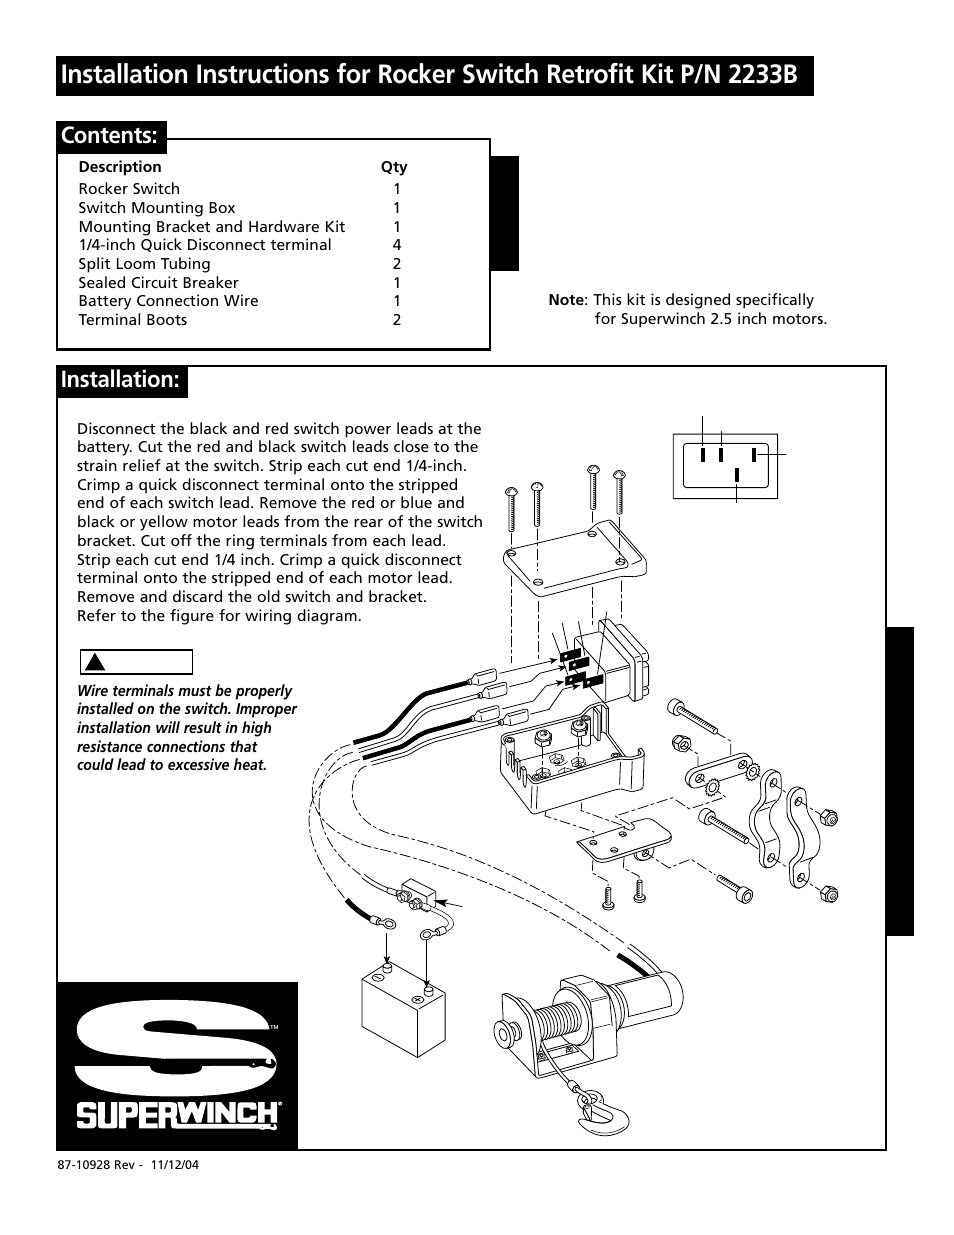 superwinch rocker switch 2233b page1 superwinch rocker switch (2233b) user manual 6 pages superwinch wiring diagram at fashall.co